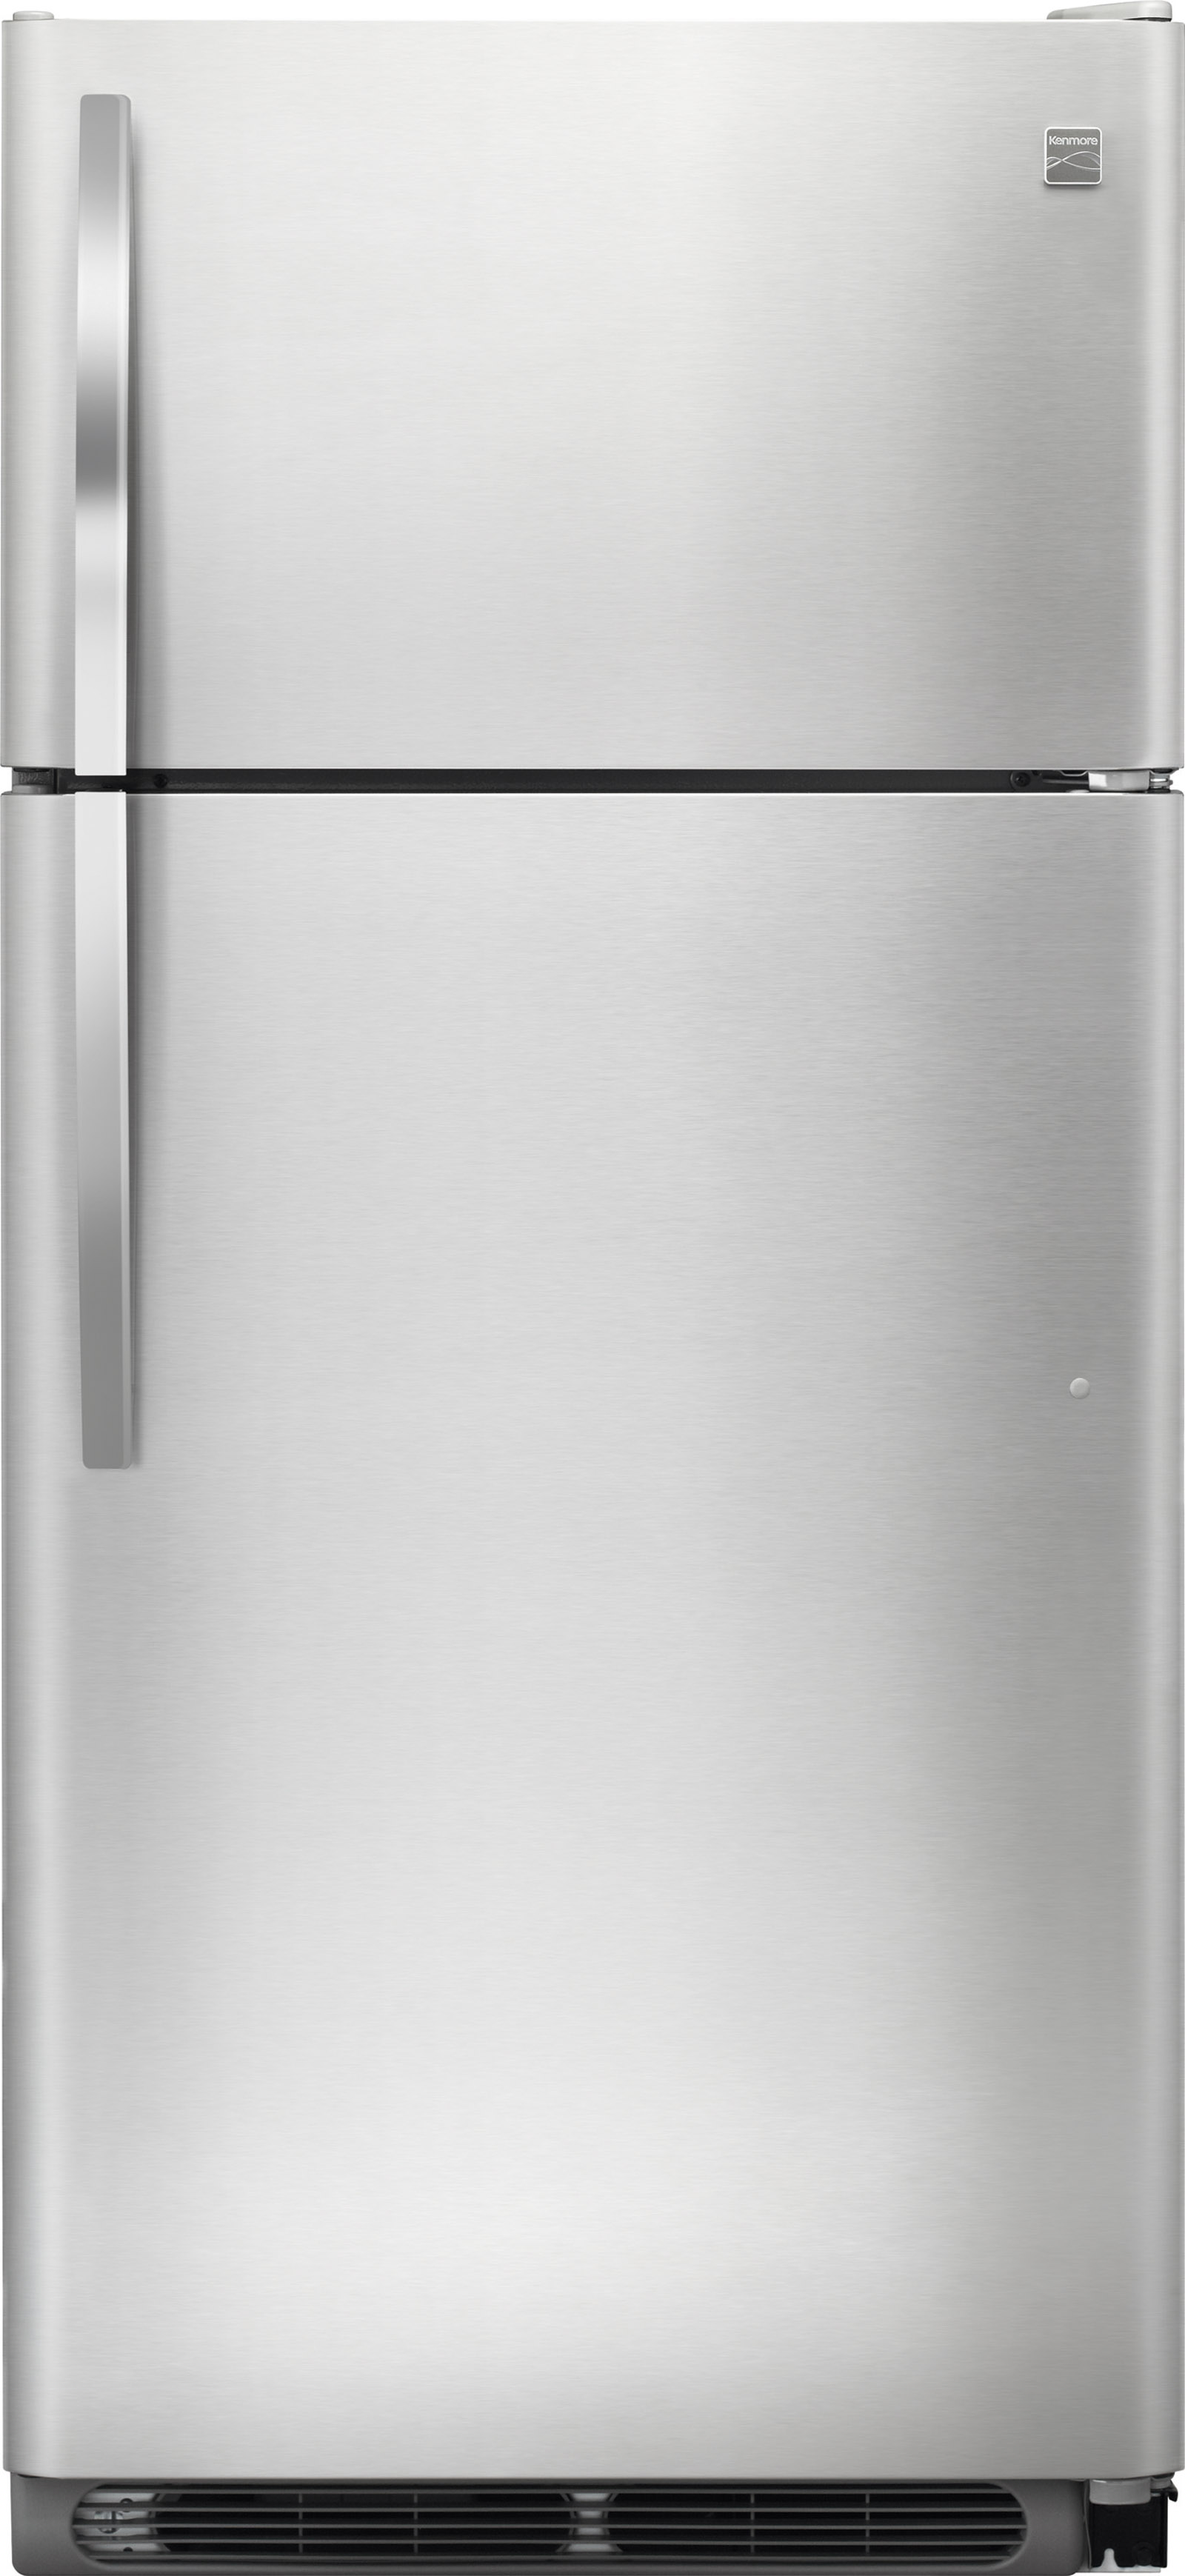 70505-18-cu-ft-Top-Freezer-Refrigerator-Stainless-Steel